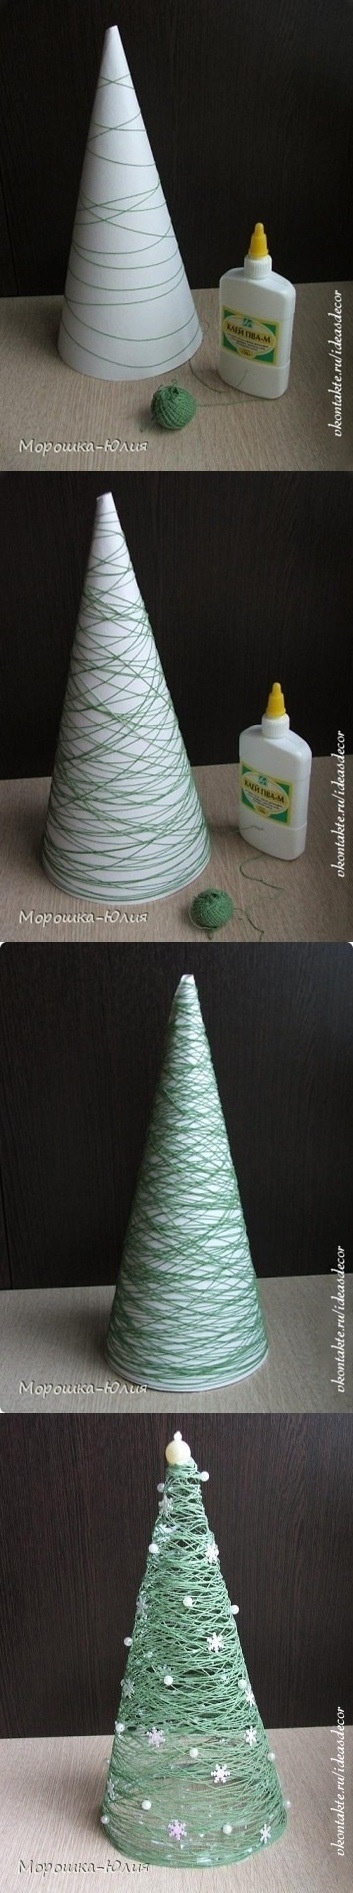 Make your own miniature Christmas trees by using a cone shaped template, wrap and glue colored twine and add pins and stars to create a Christmas theme.